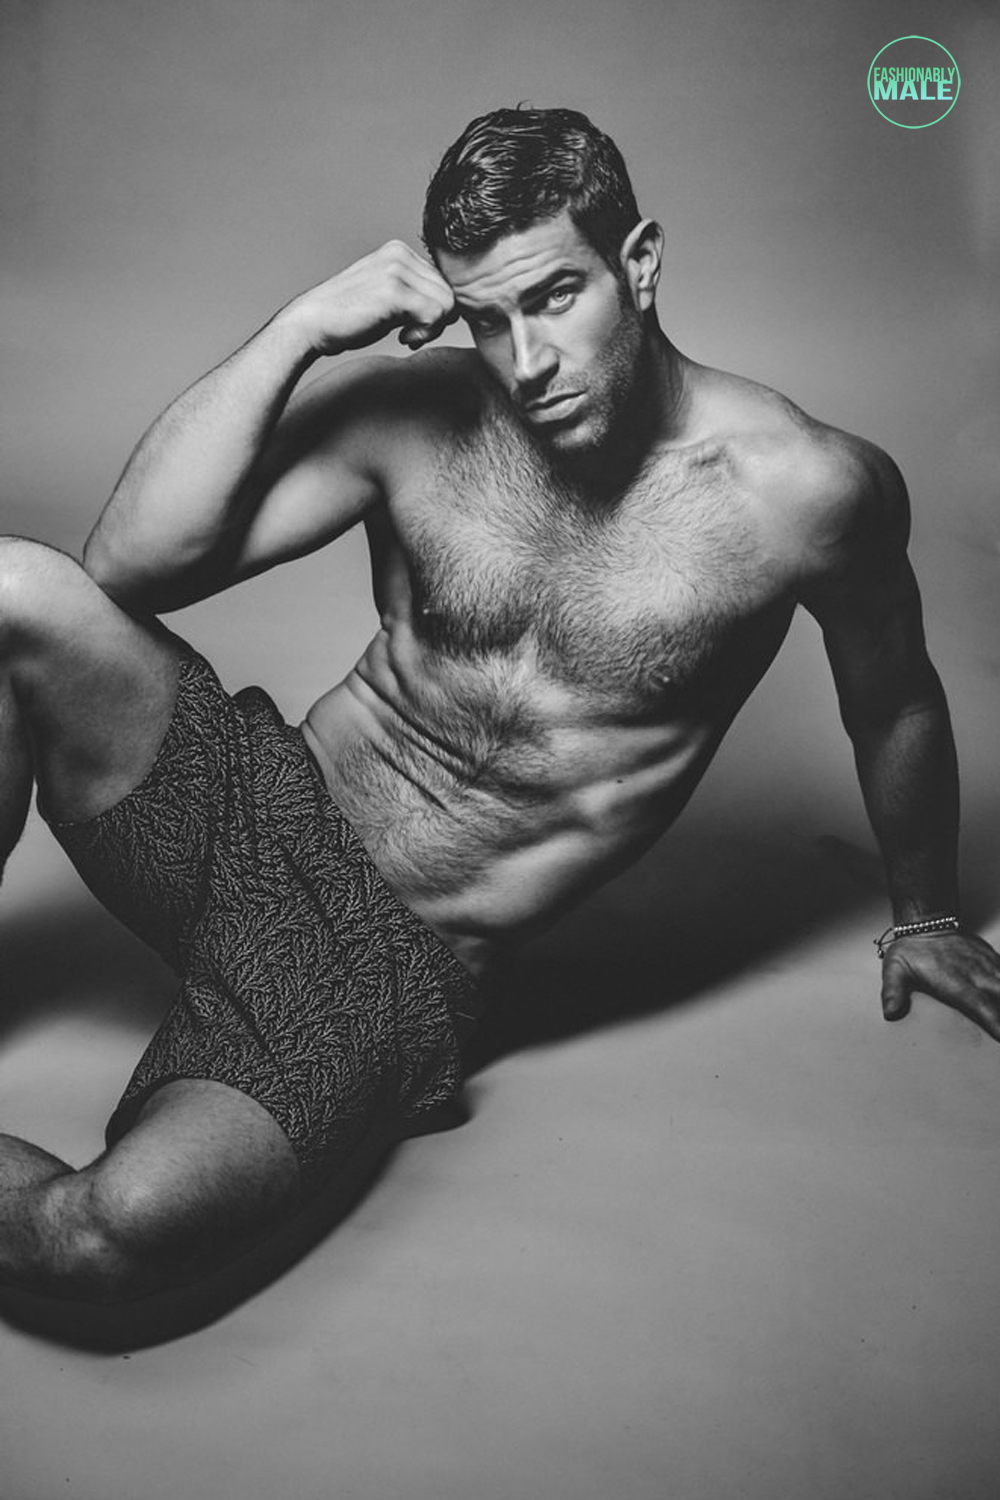 Josh Owens by Sean Micah for Fashionably Male4